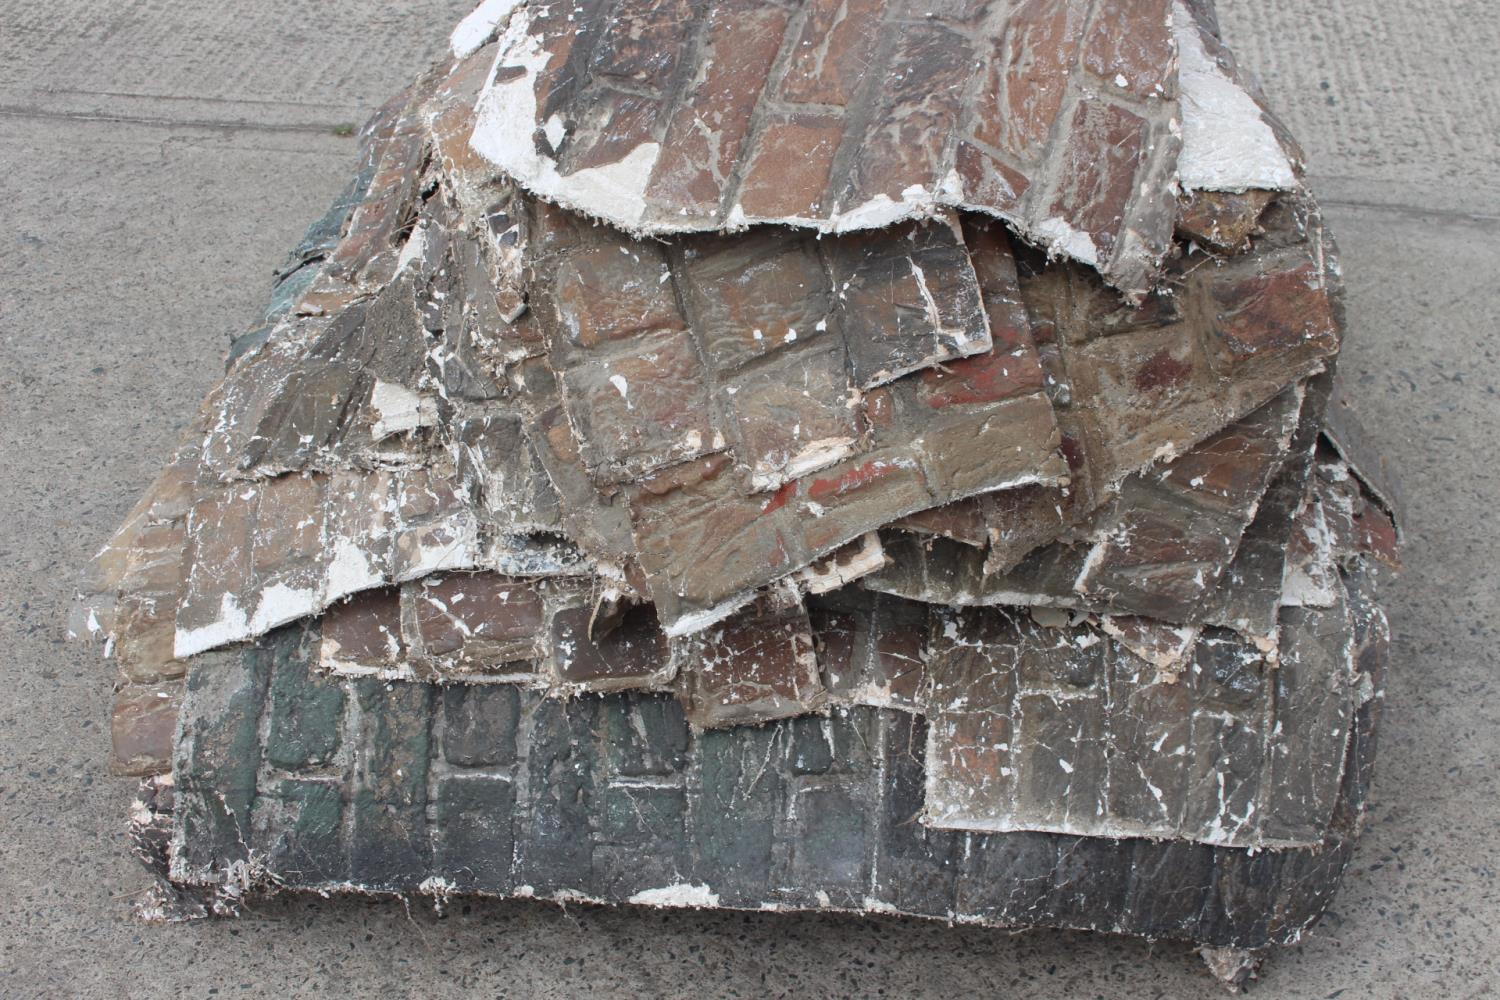 Two pallets of fibre glass plaster wall sections. - Image 5 of 5